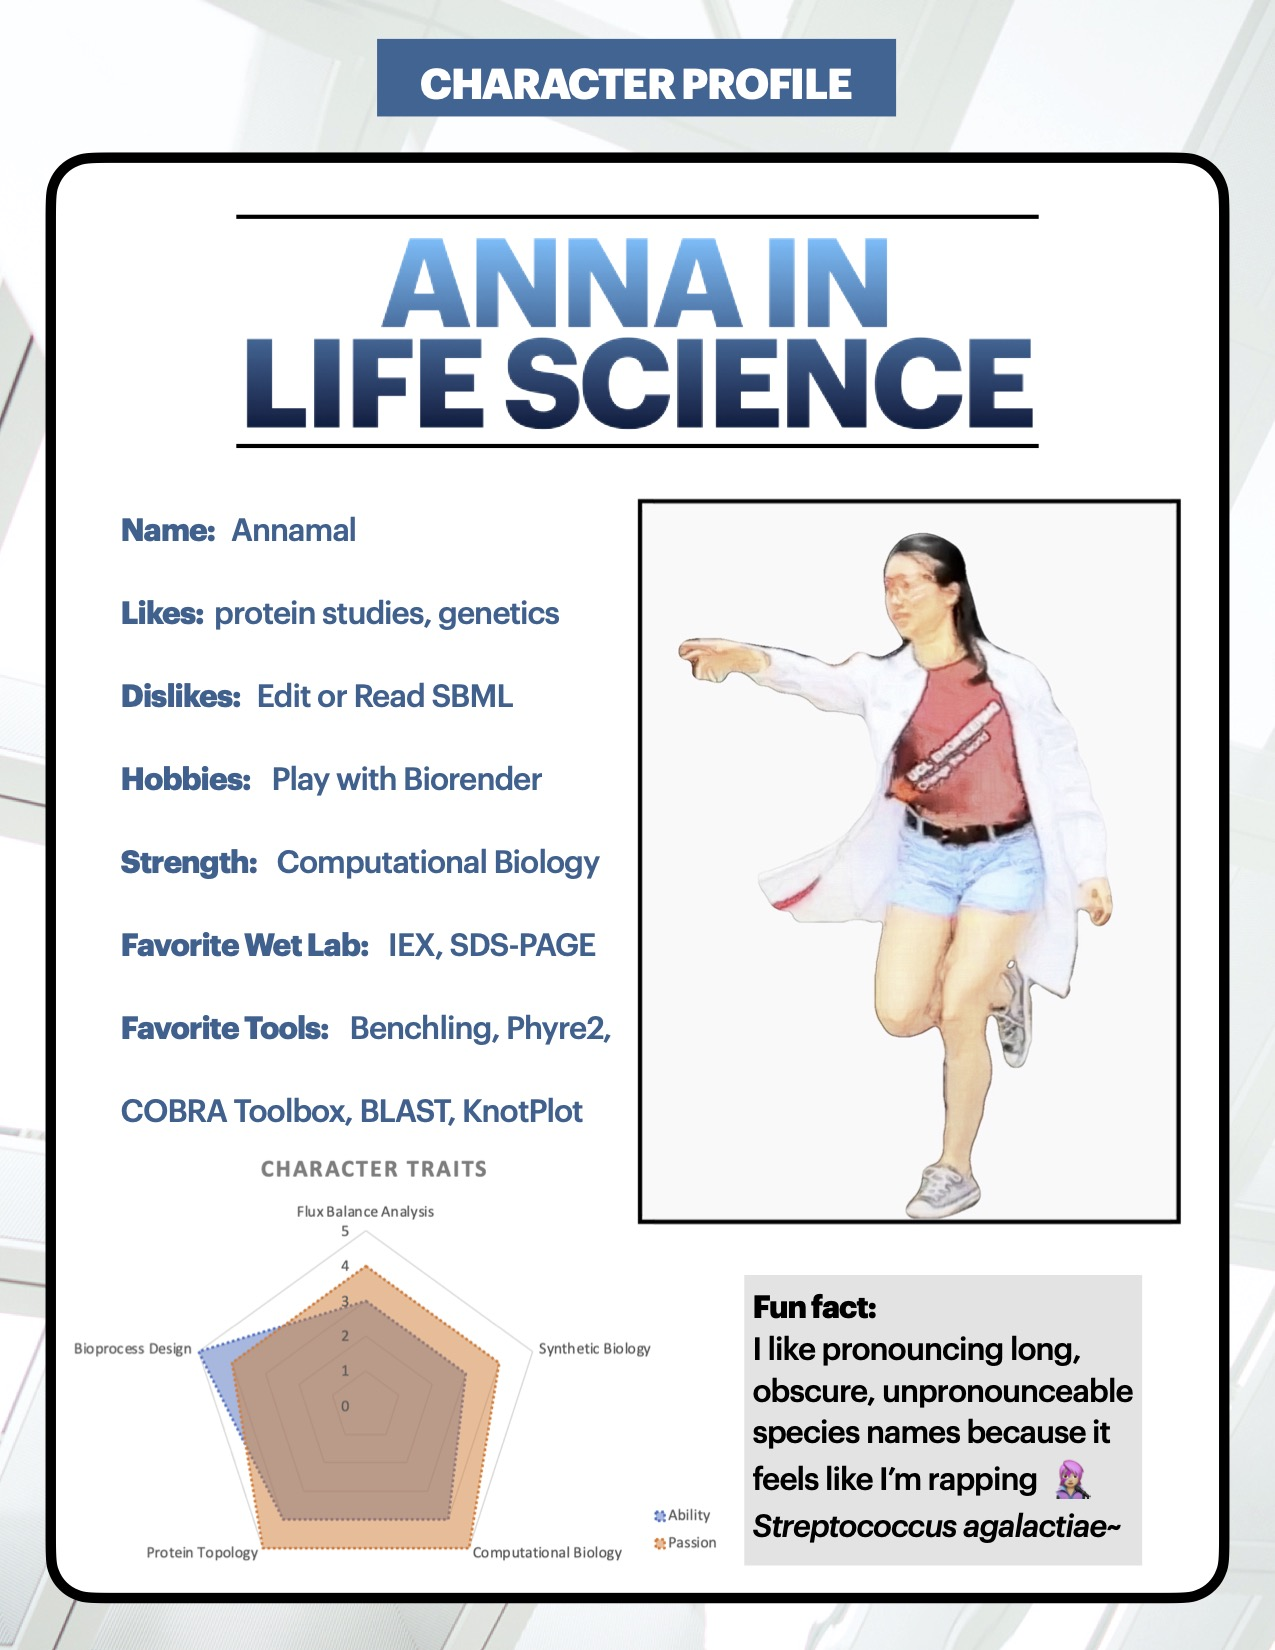 Anna in life science - anime character profile